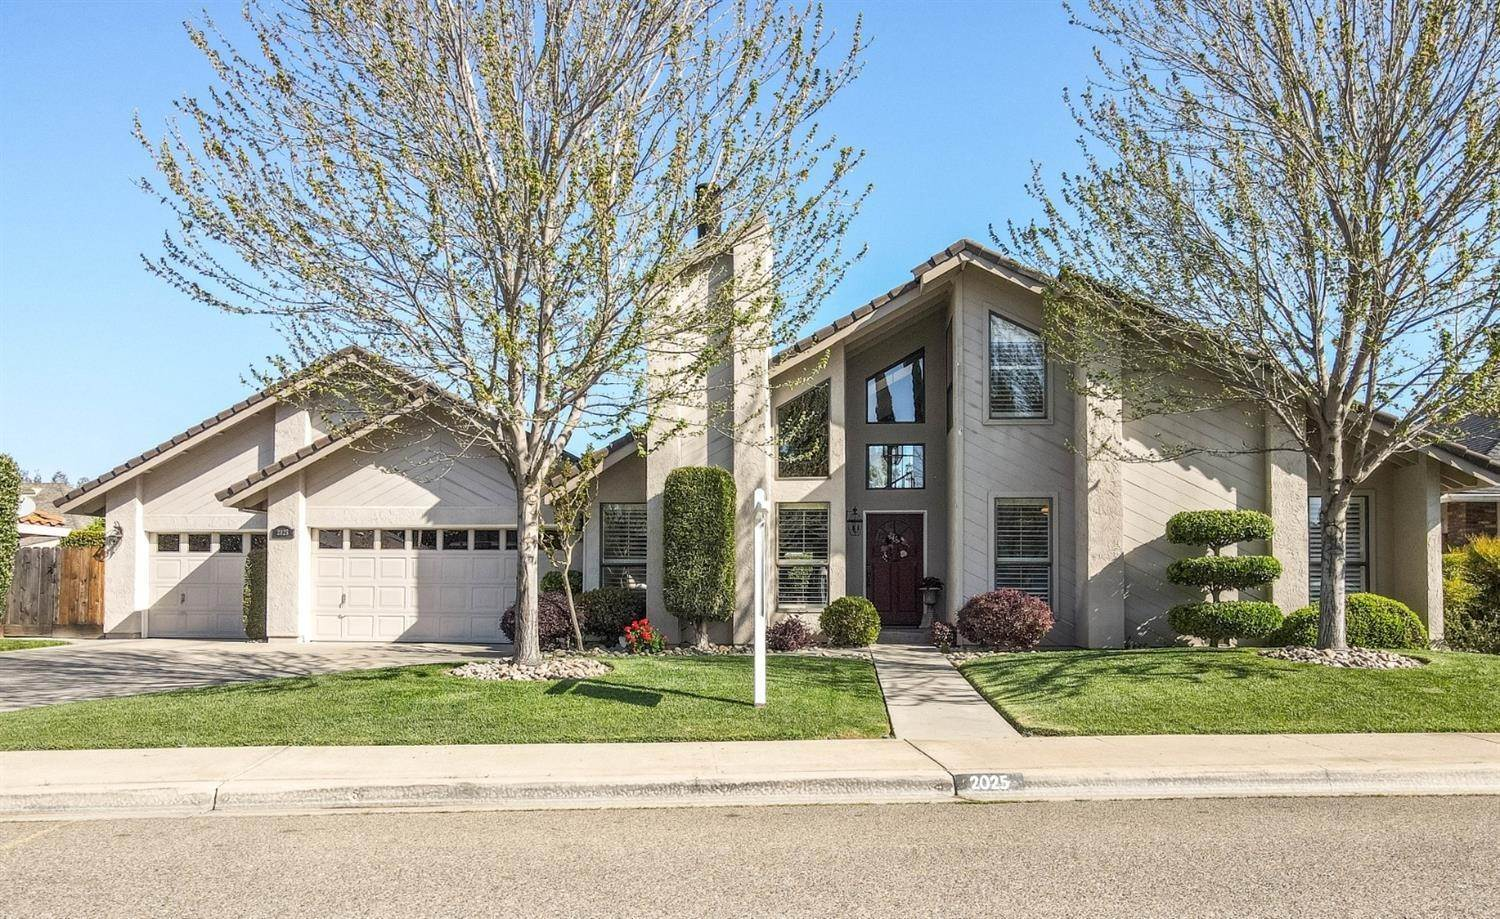 Single Family Homes for Active at 2025 Sconyers Court Turlock, California 95382 United States